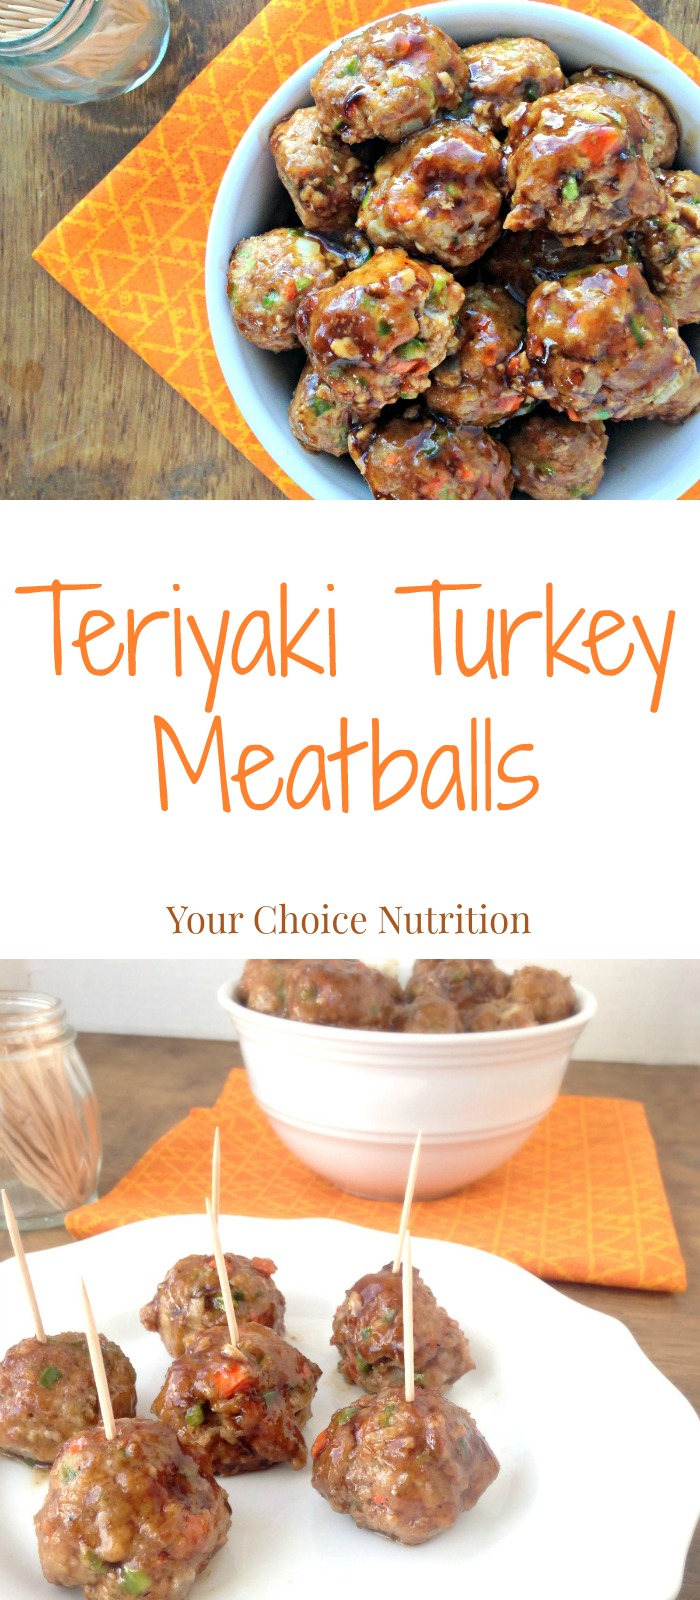 Teriyaki Turkey Meatballs. A healthier meatball that is perfect as an appetizer or included as part of a main dish!